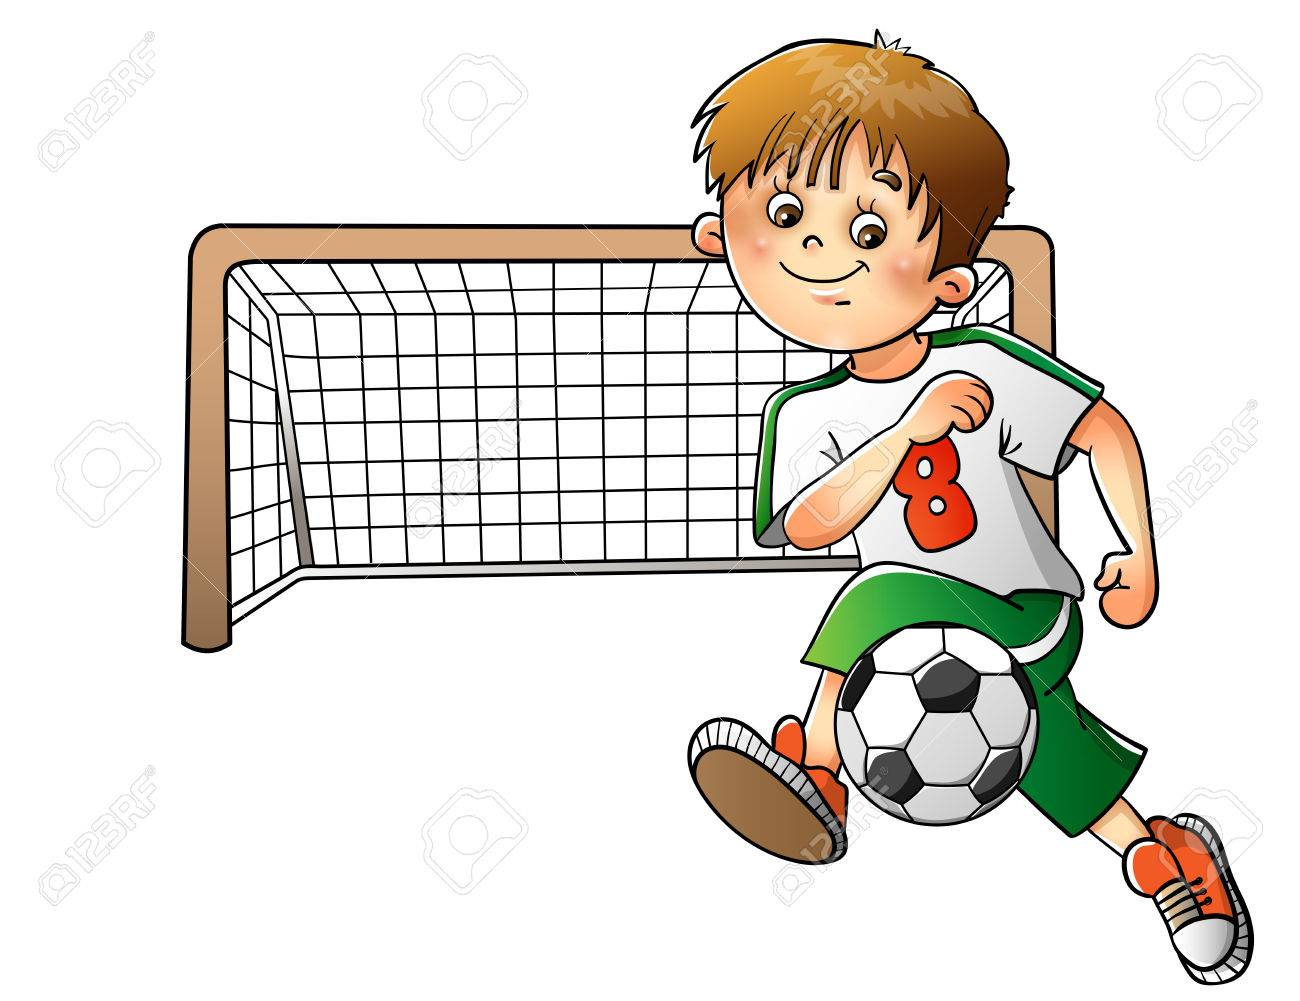 Boy playing football isolated on white background.